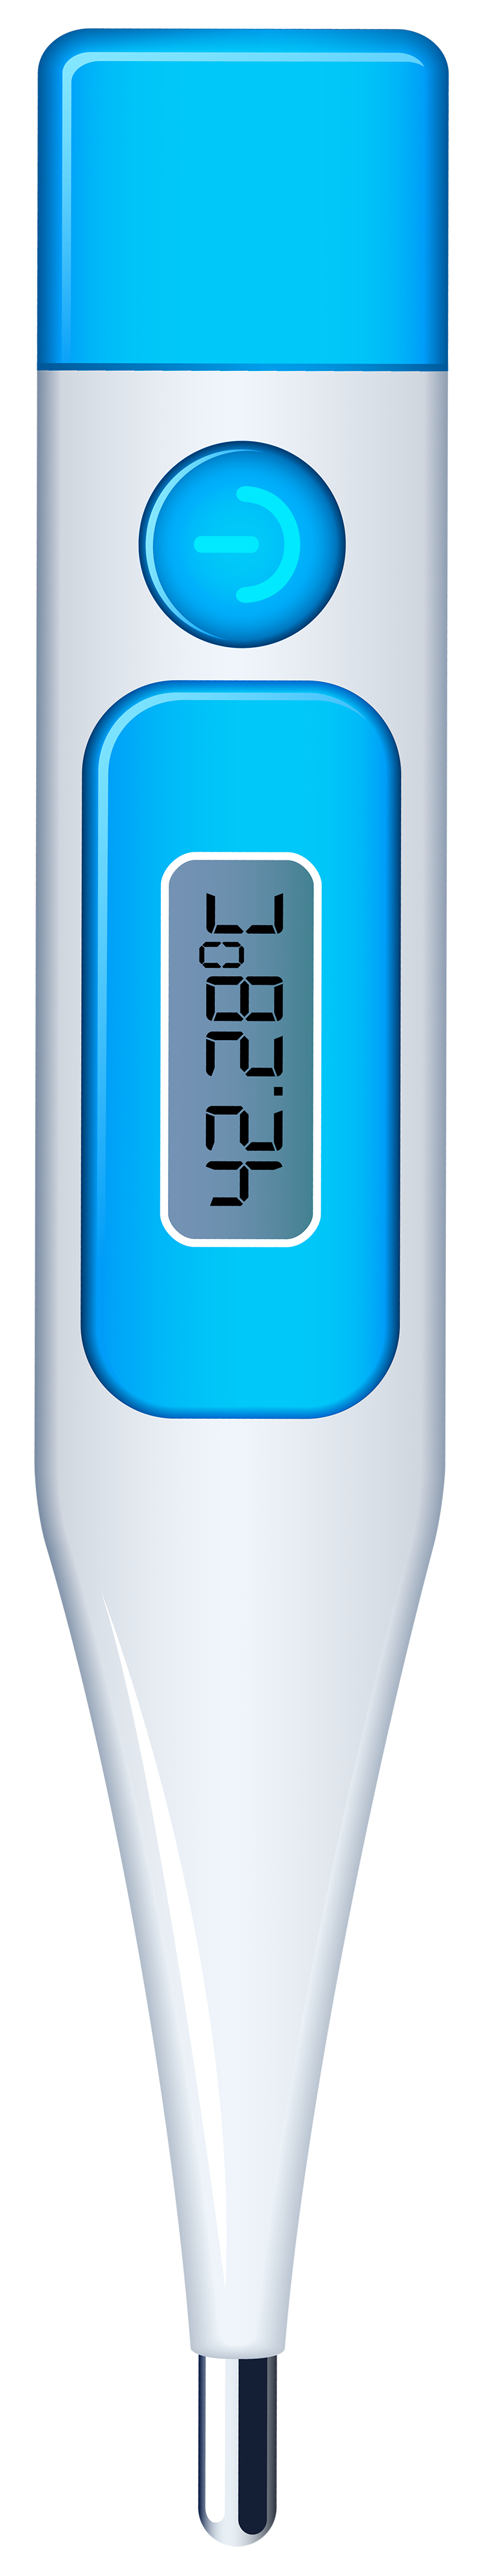 Mouth thermometer png. Digital clipart best web